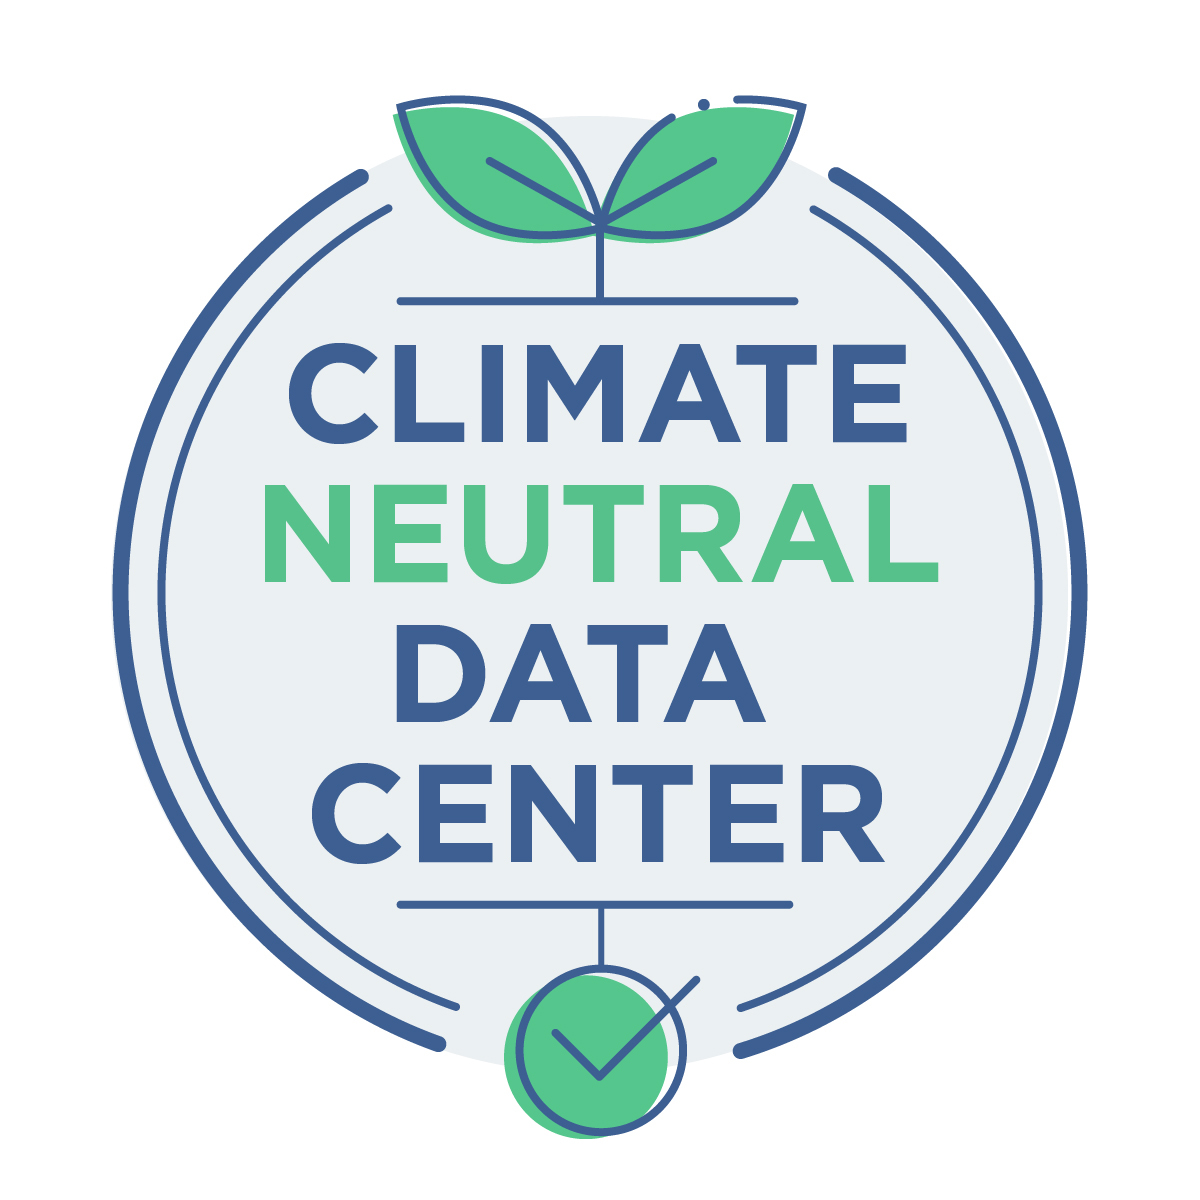 Climate neutral data center pact